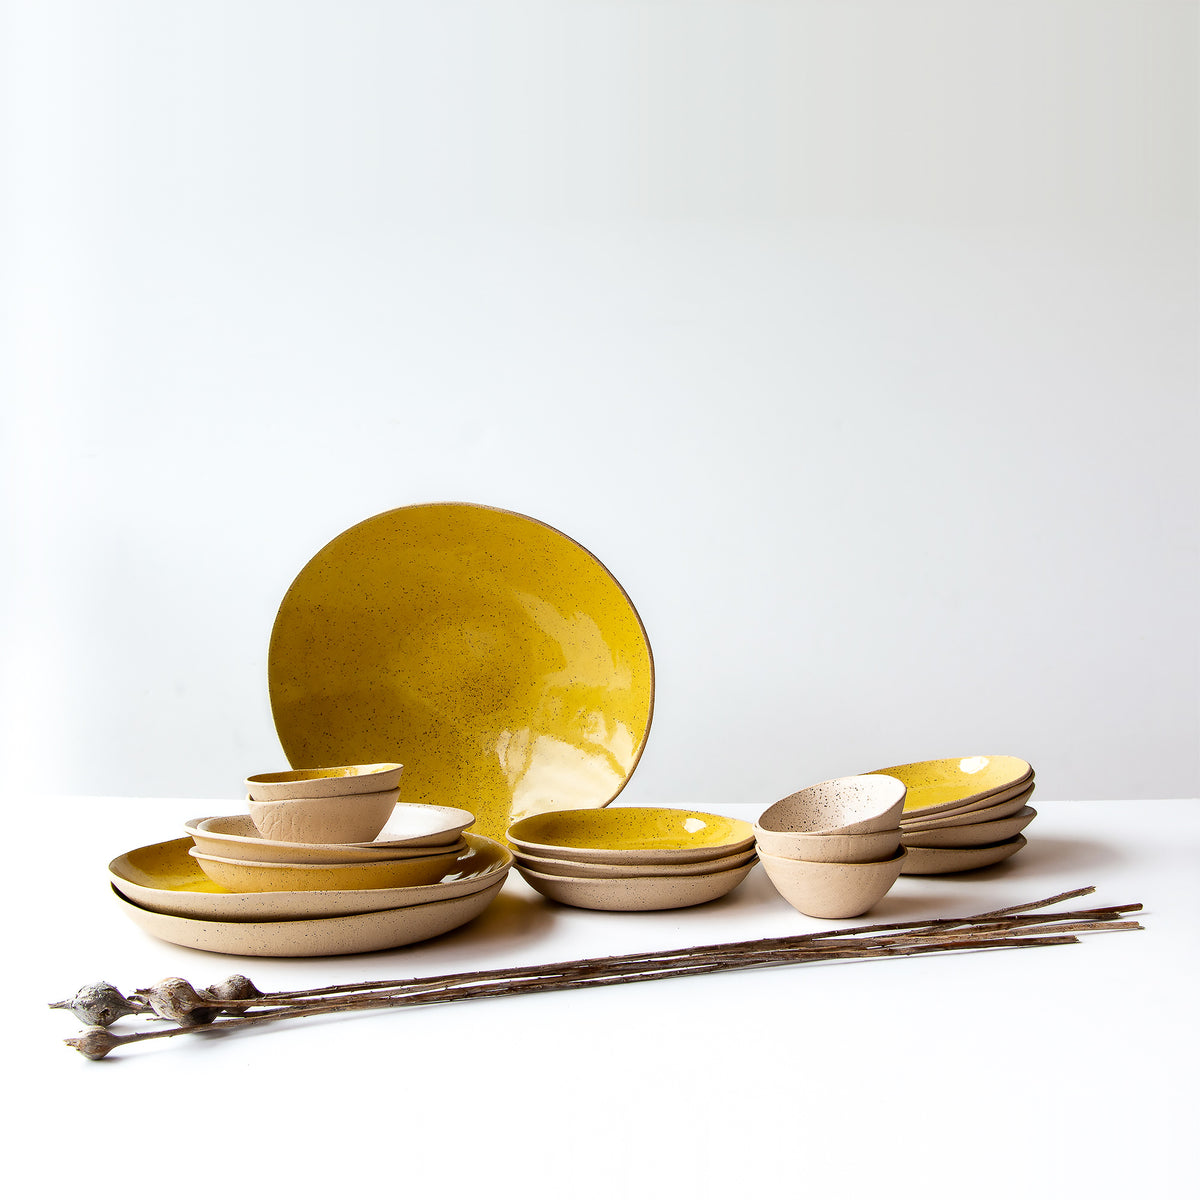 Lola Cera- Freckled Stoneware Ceramic Collection - Sold by Chic & Basta